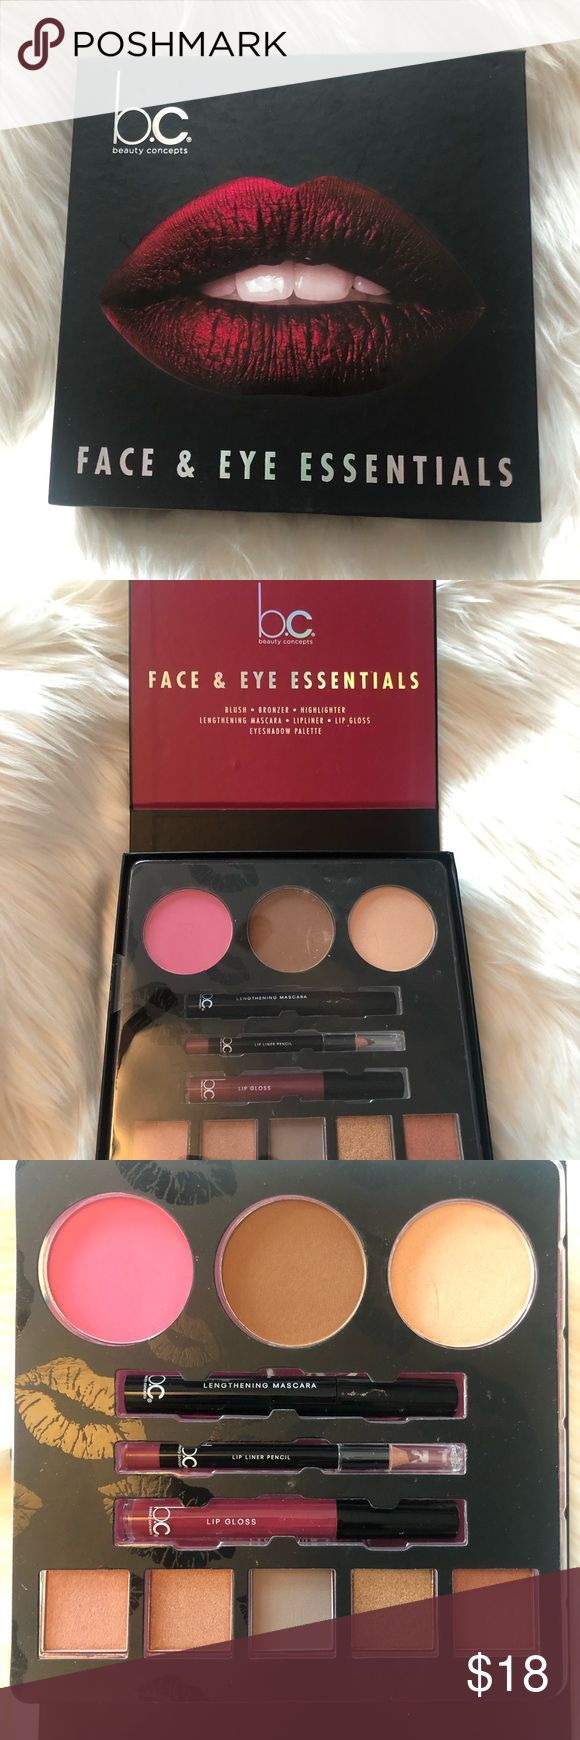 b.c. Beauty Concepts Face & Eye Essentials Kit includes